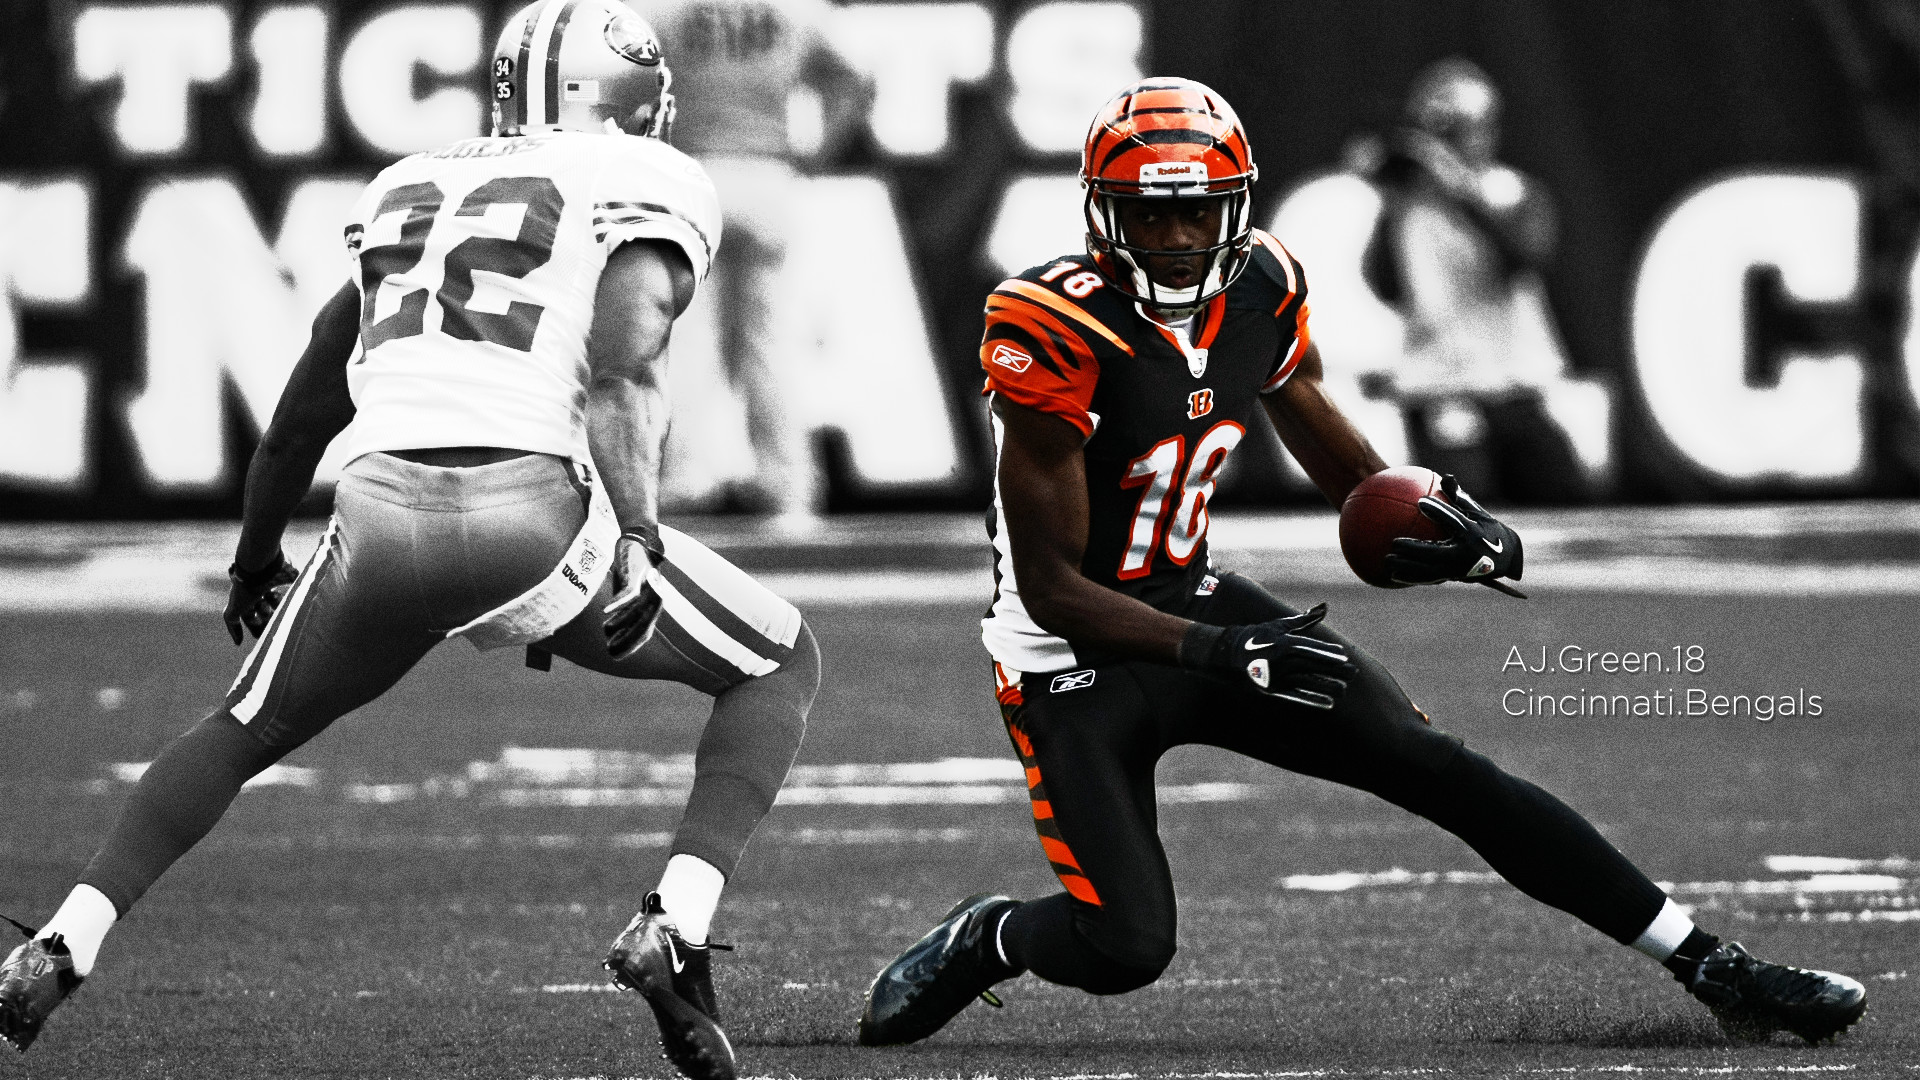 1920x1080 NFL Wallpapers - Wallpaper Cave